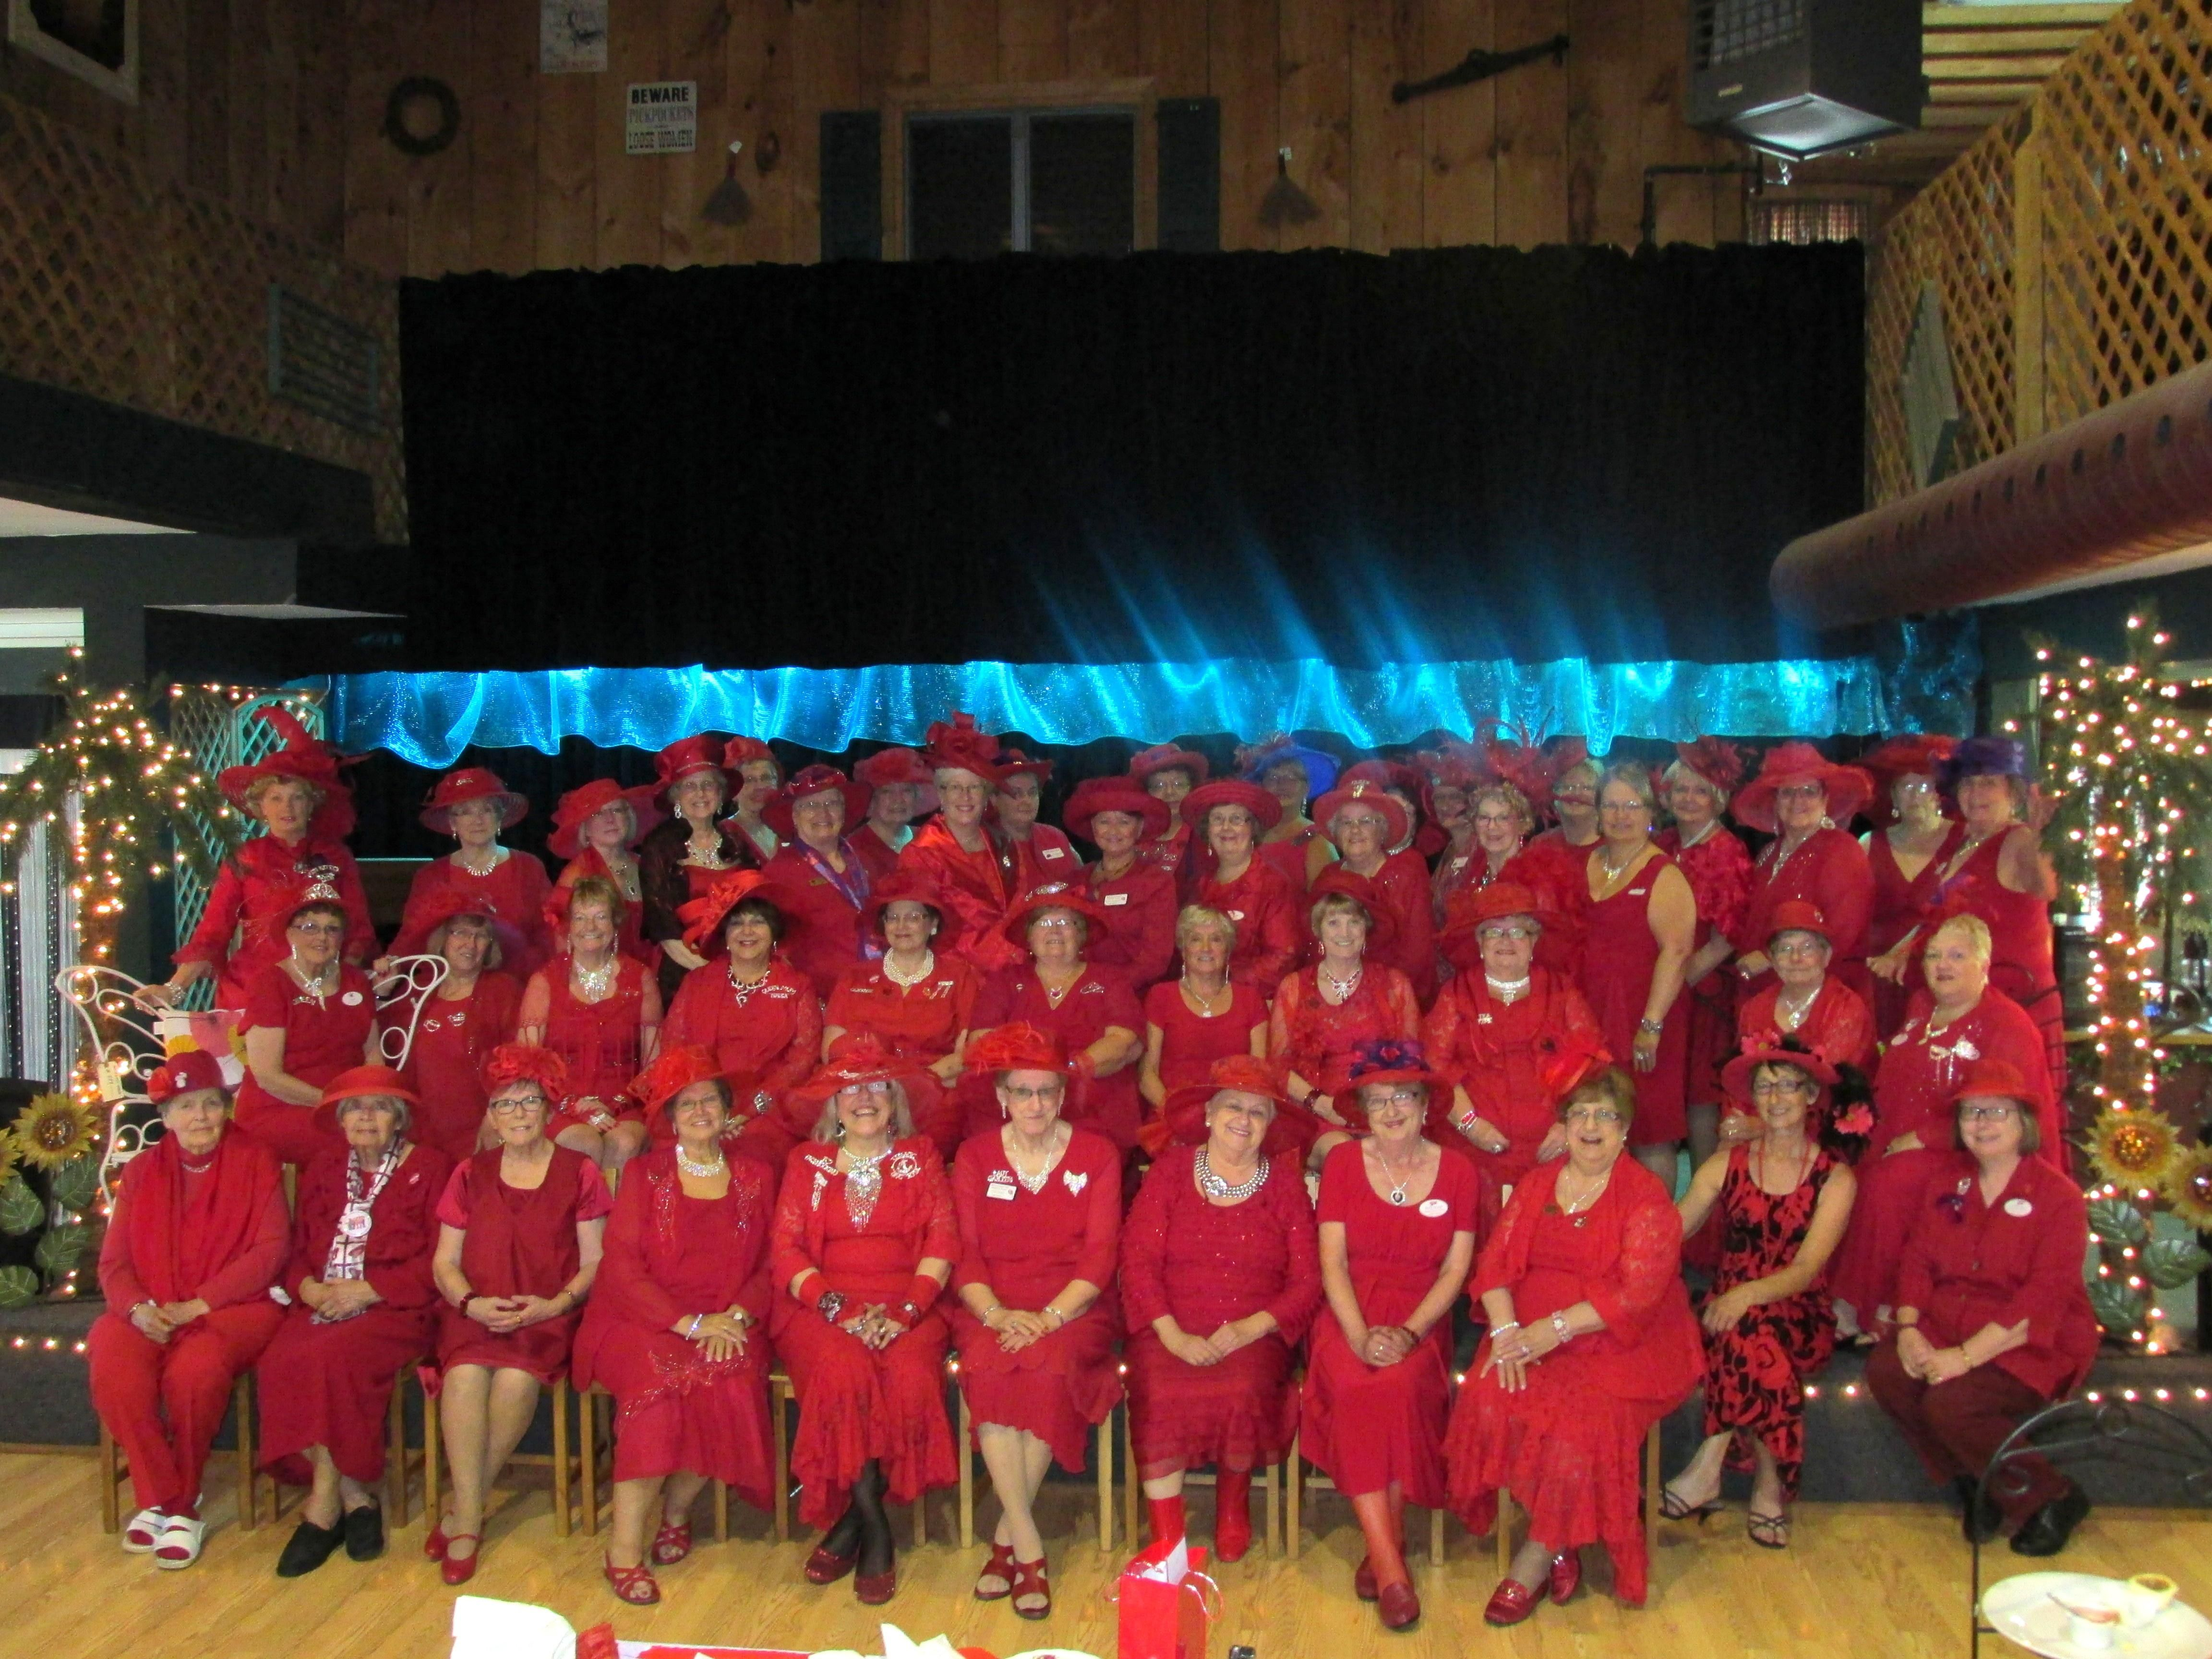 48 Red Hat Supporting Members joined together for a 5th Dress in Red Tea